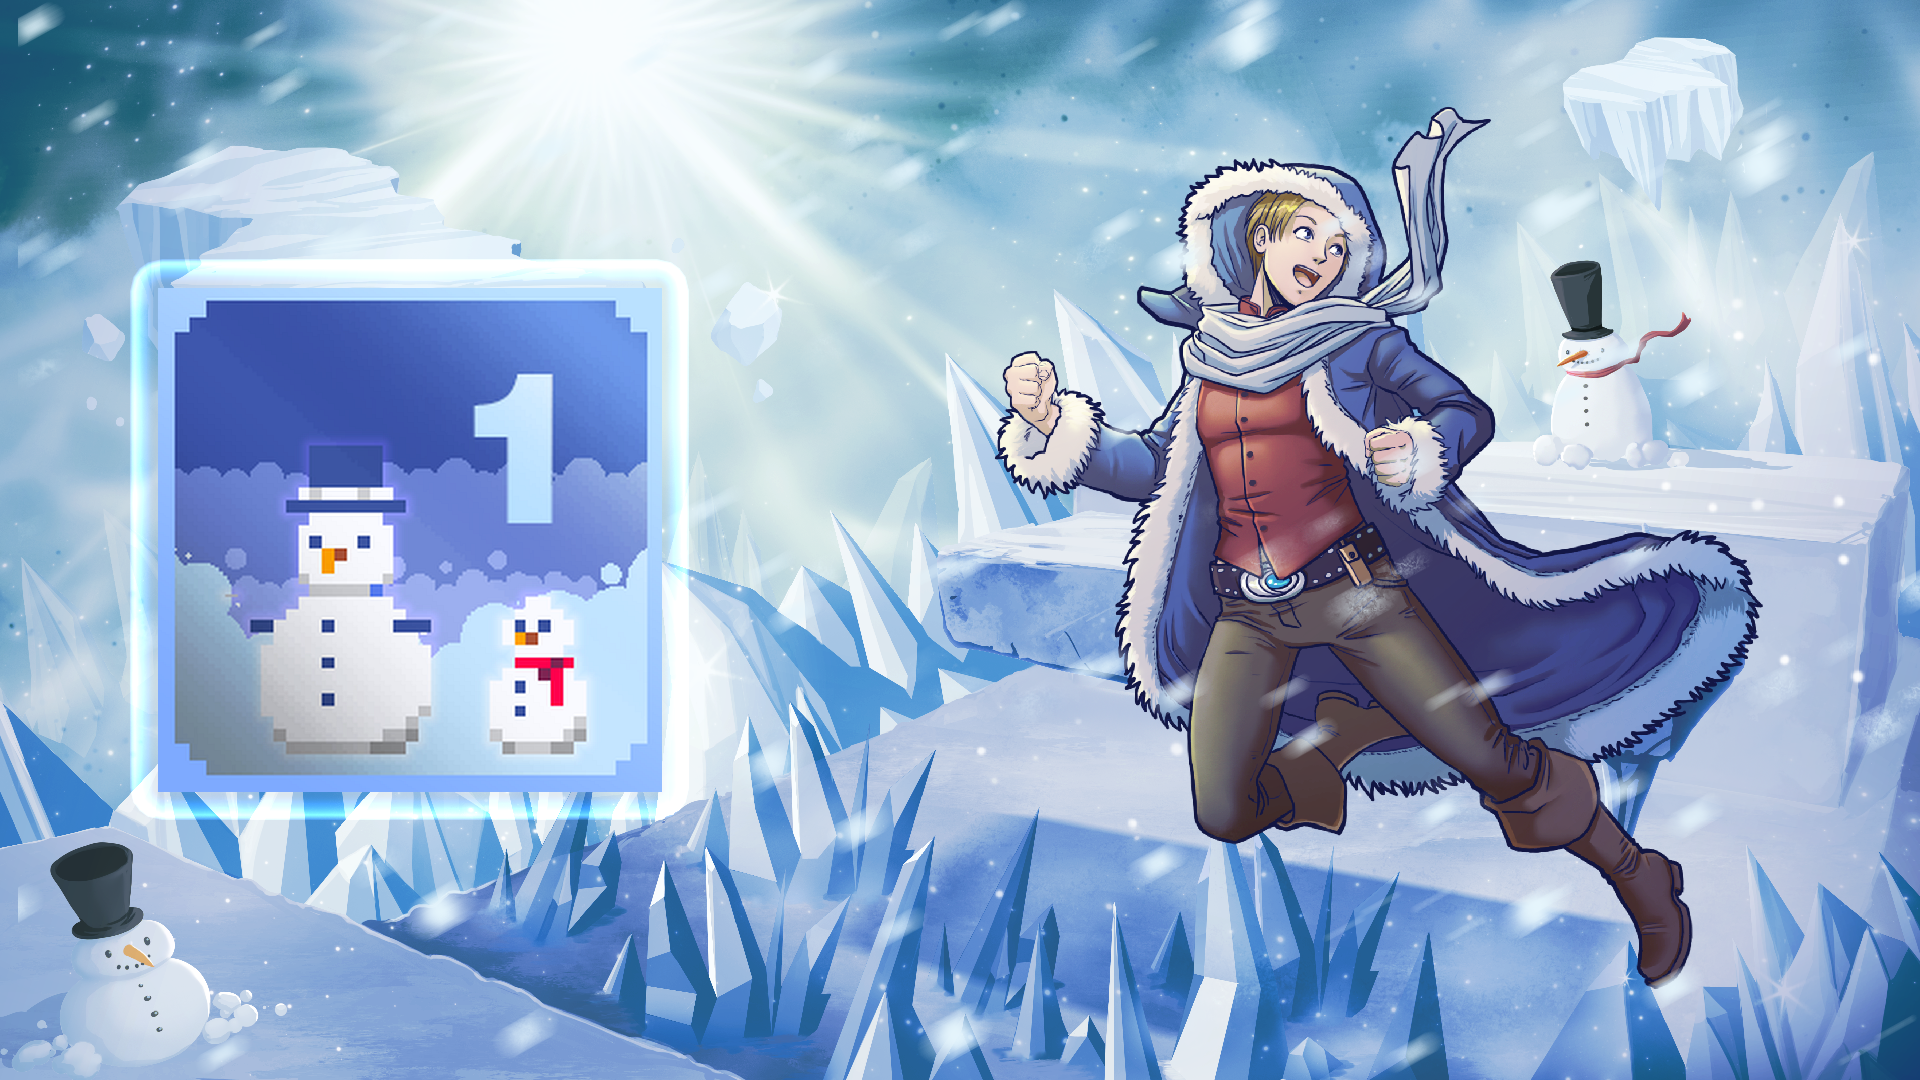 Icon for Level 1